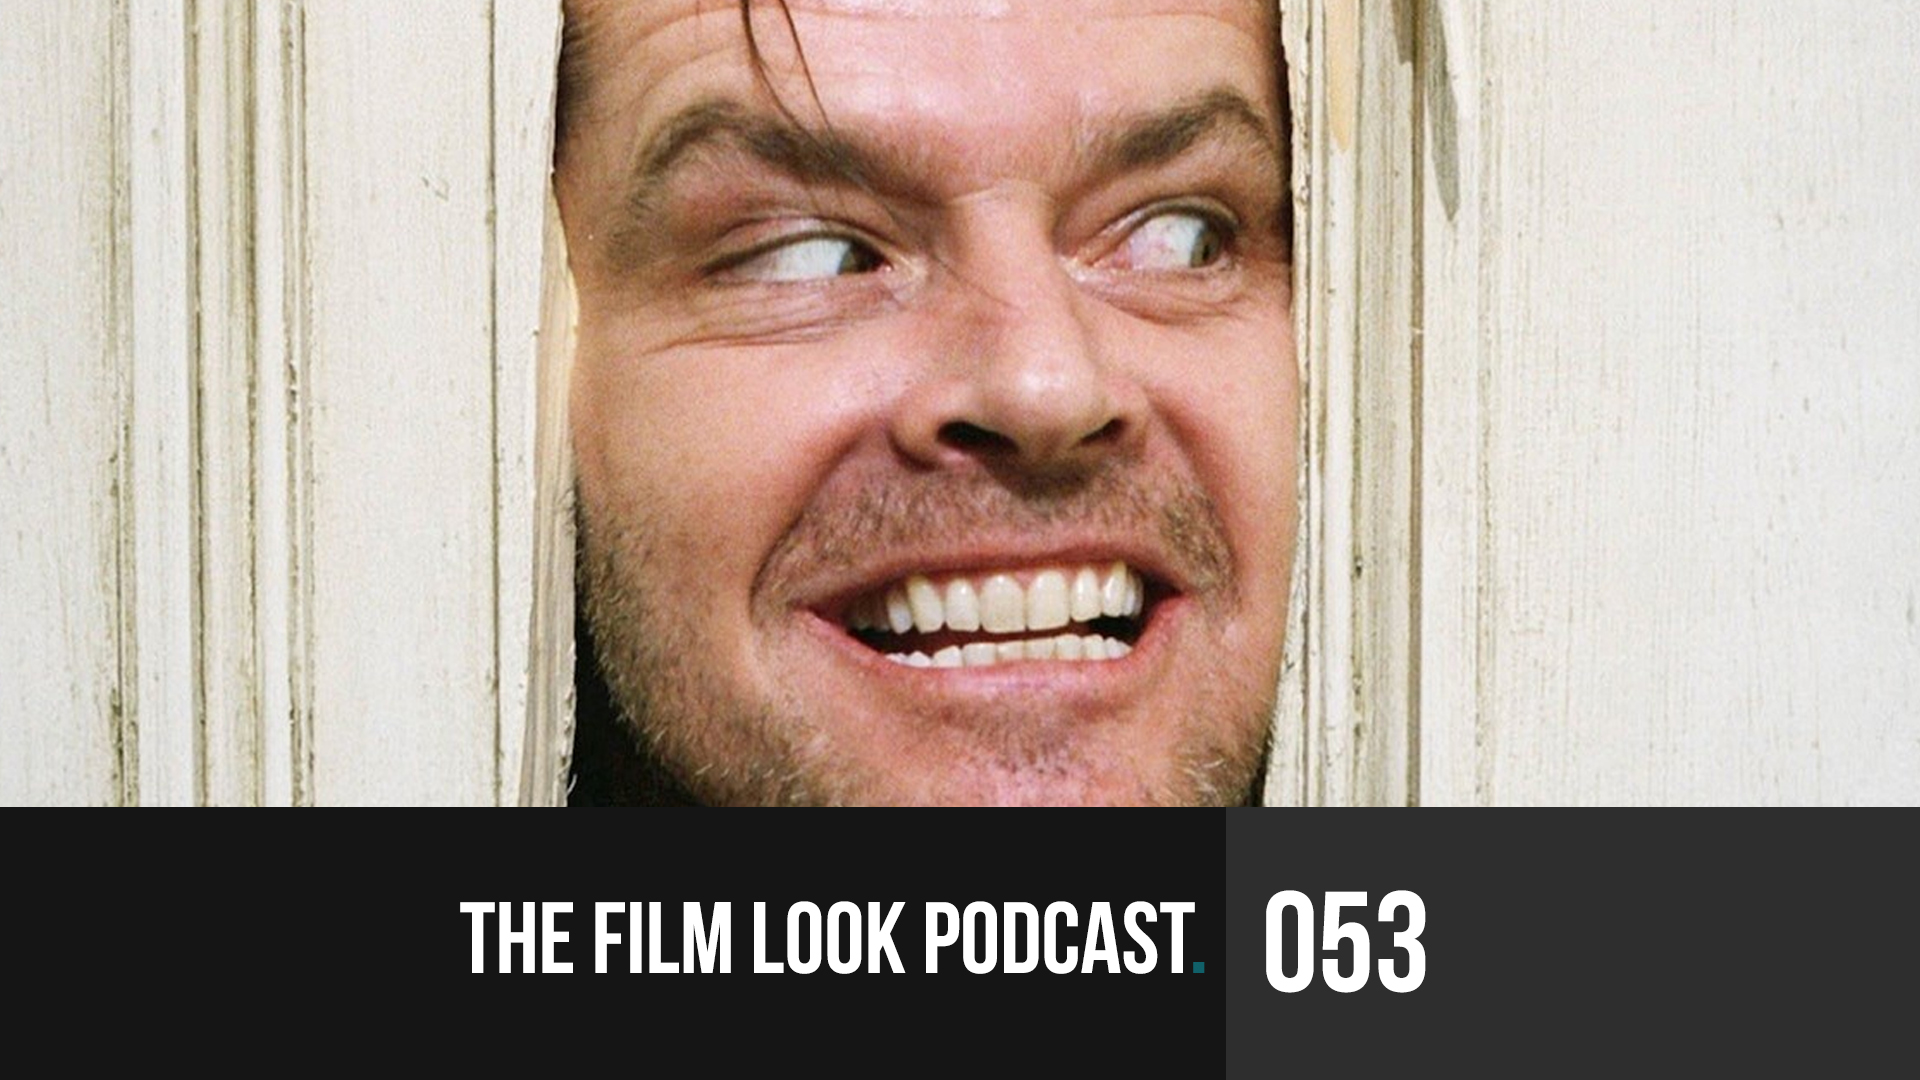 053 The Shining - Thumbnail.jpg